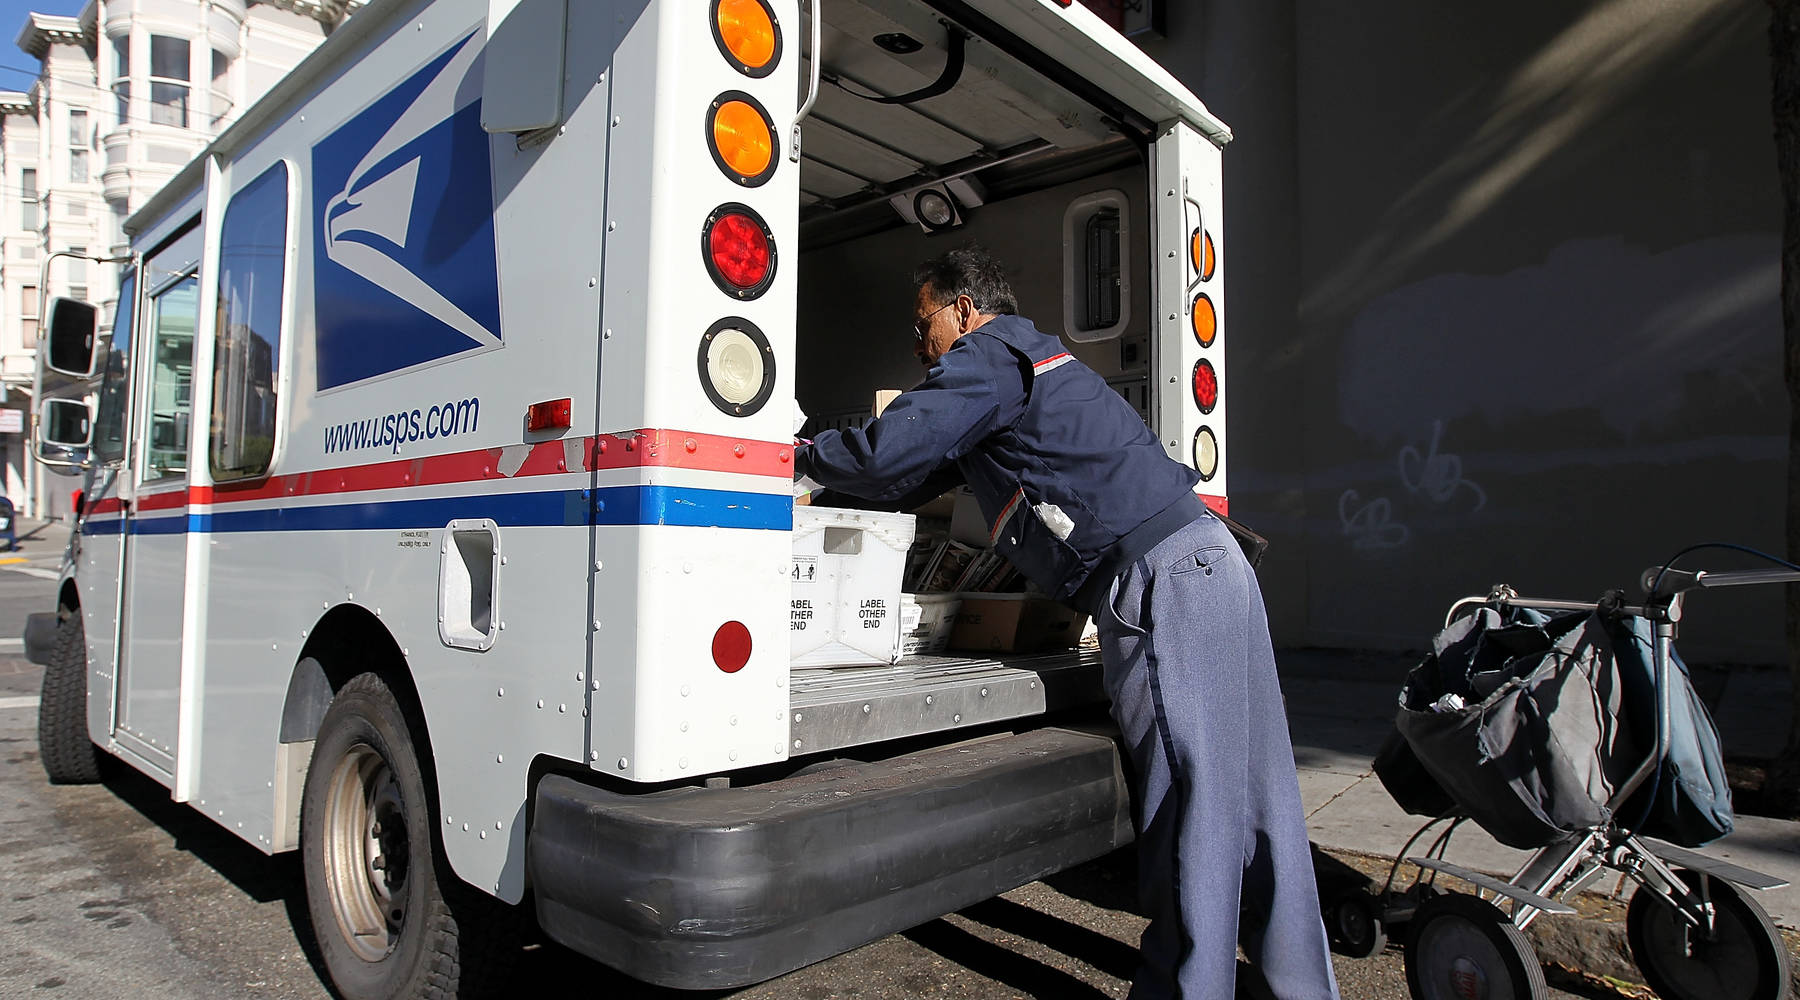 Special delivery from Amazon and USPS: Sunday packages